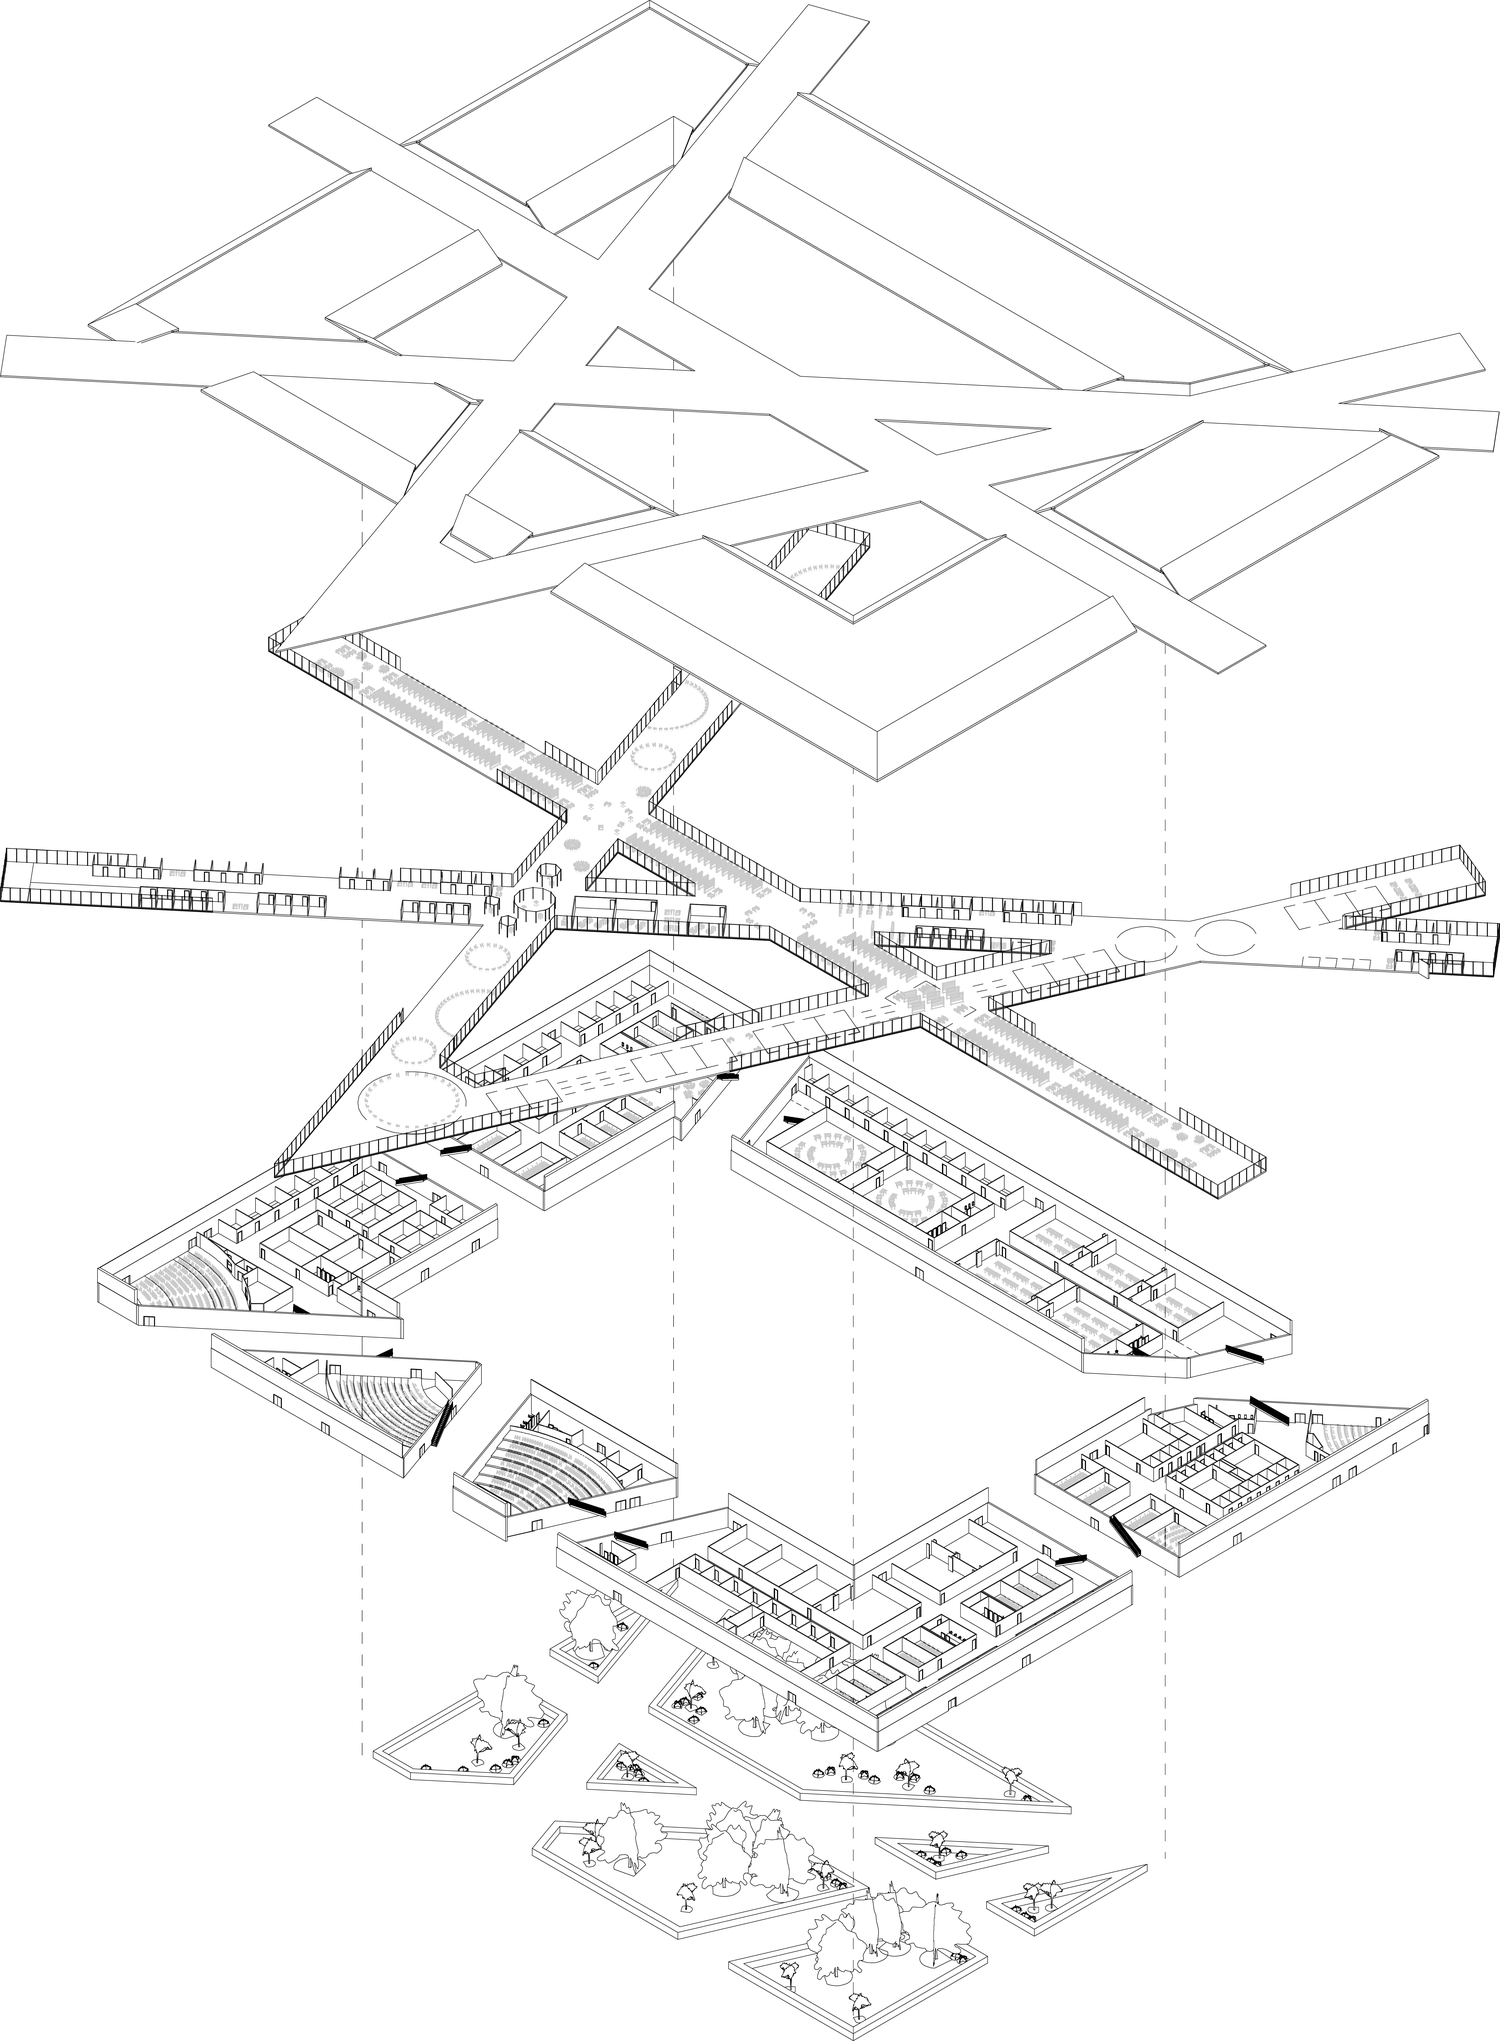 This Exploded Axonometric works because they layers work